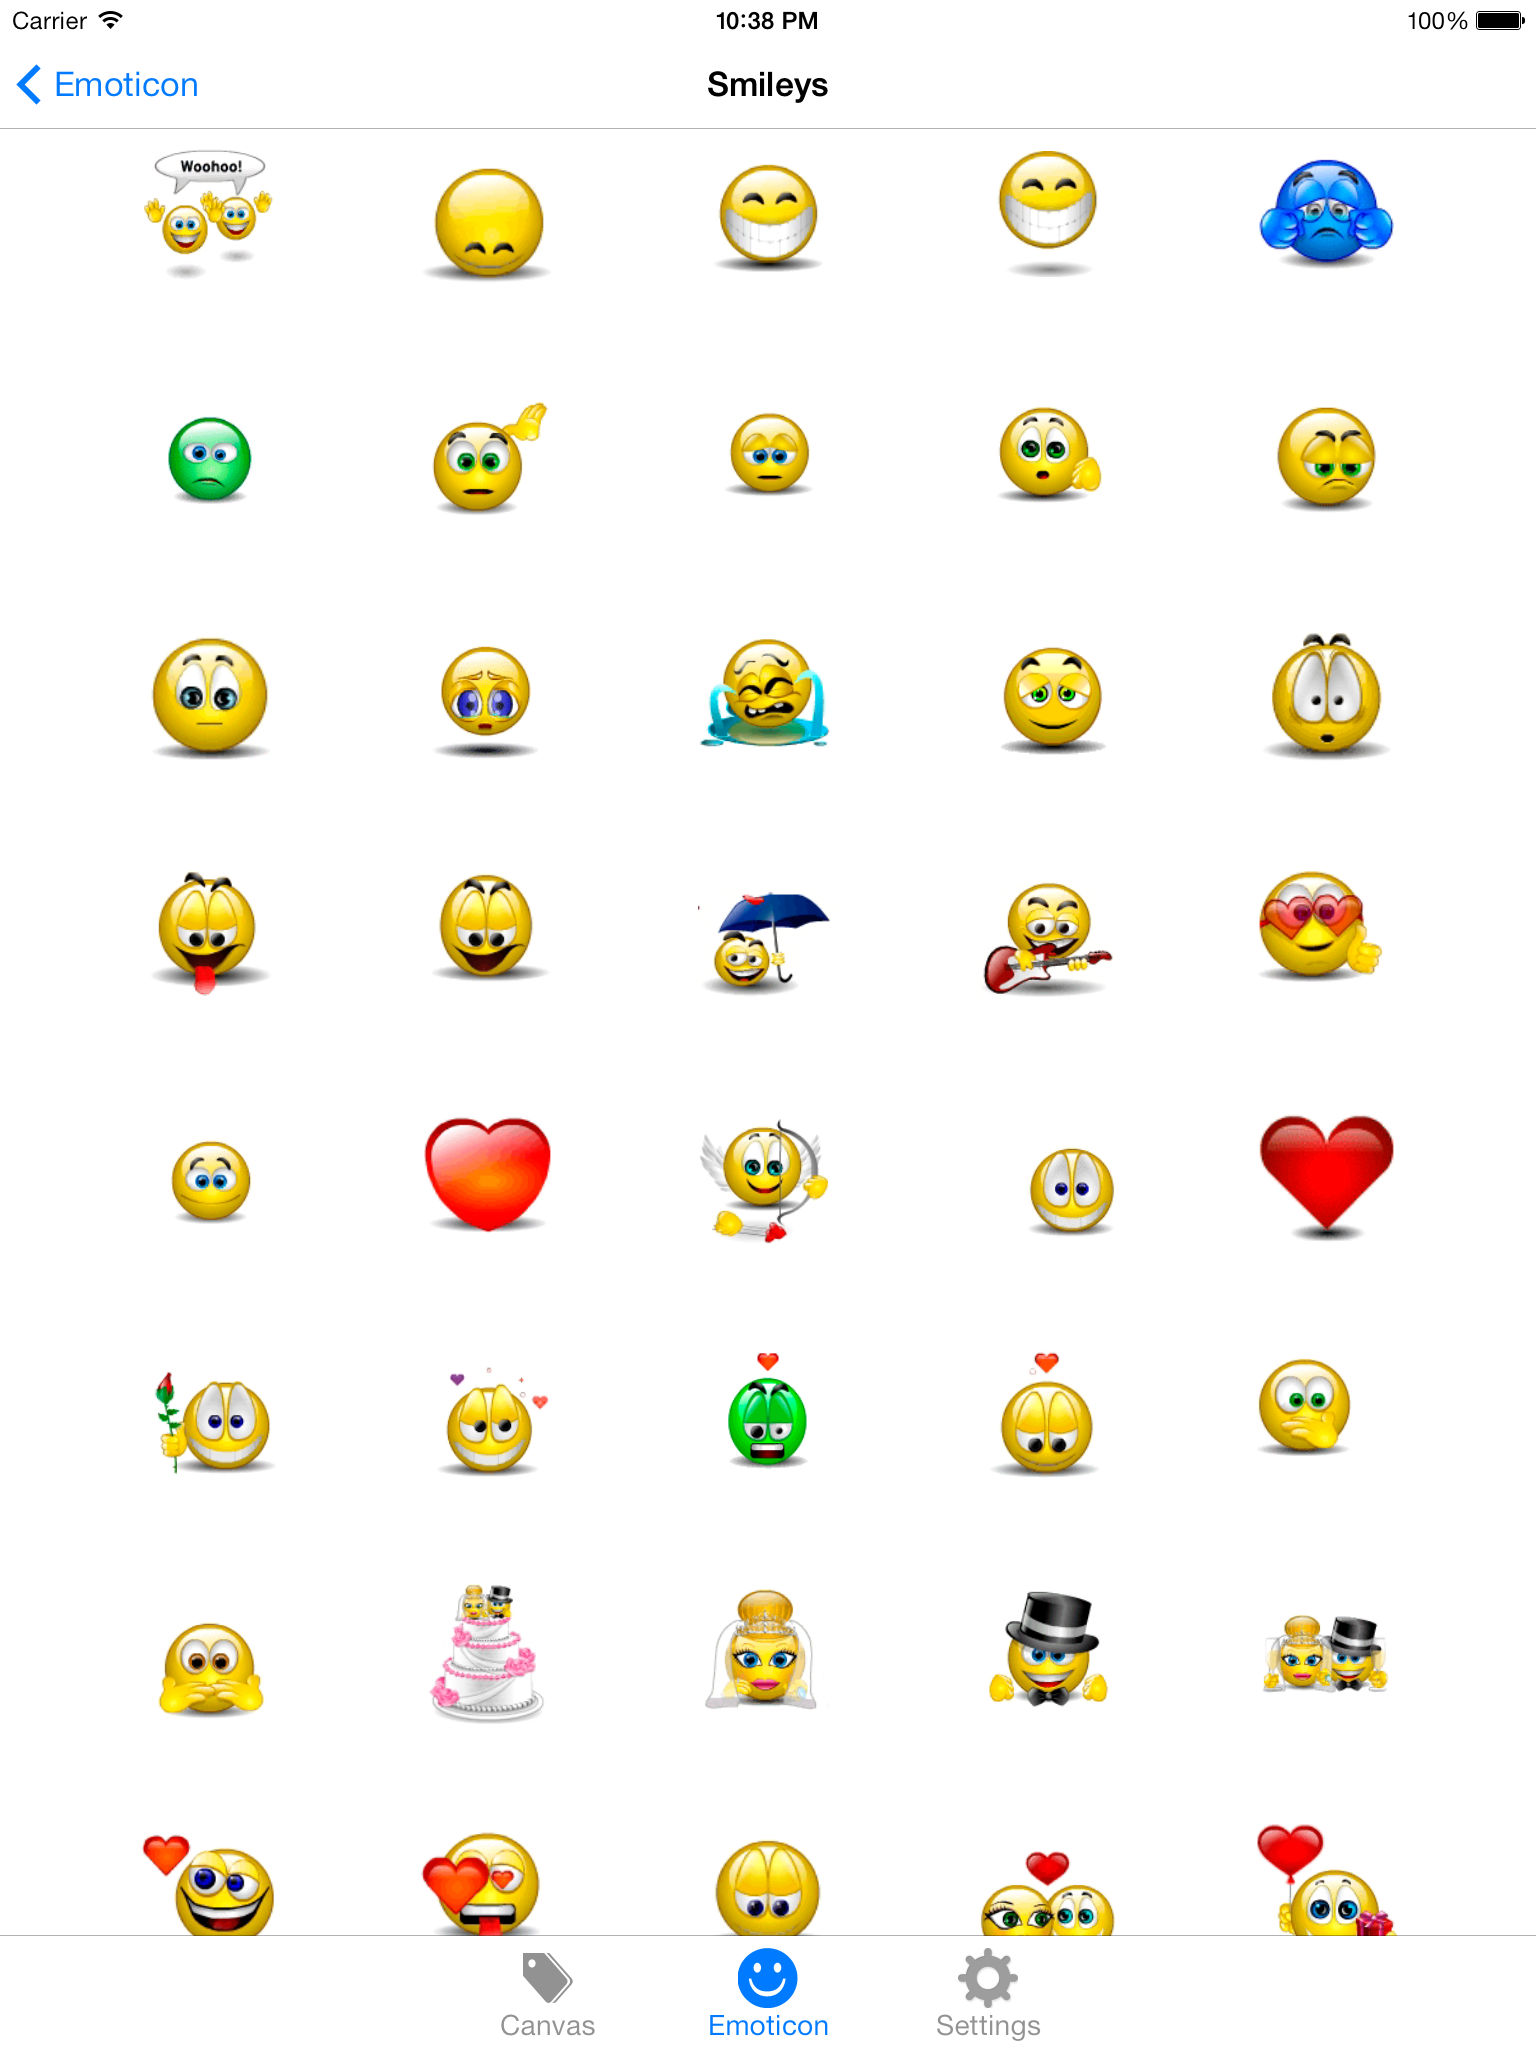 Emoji keyboard 2 smiley animations icons art new hotpop app description biocorpaavc Images